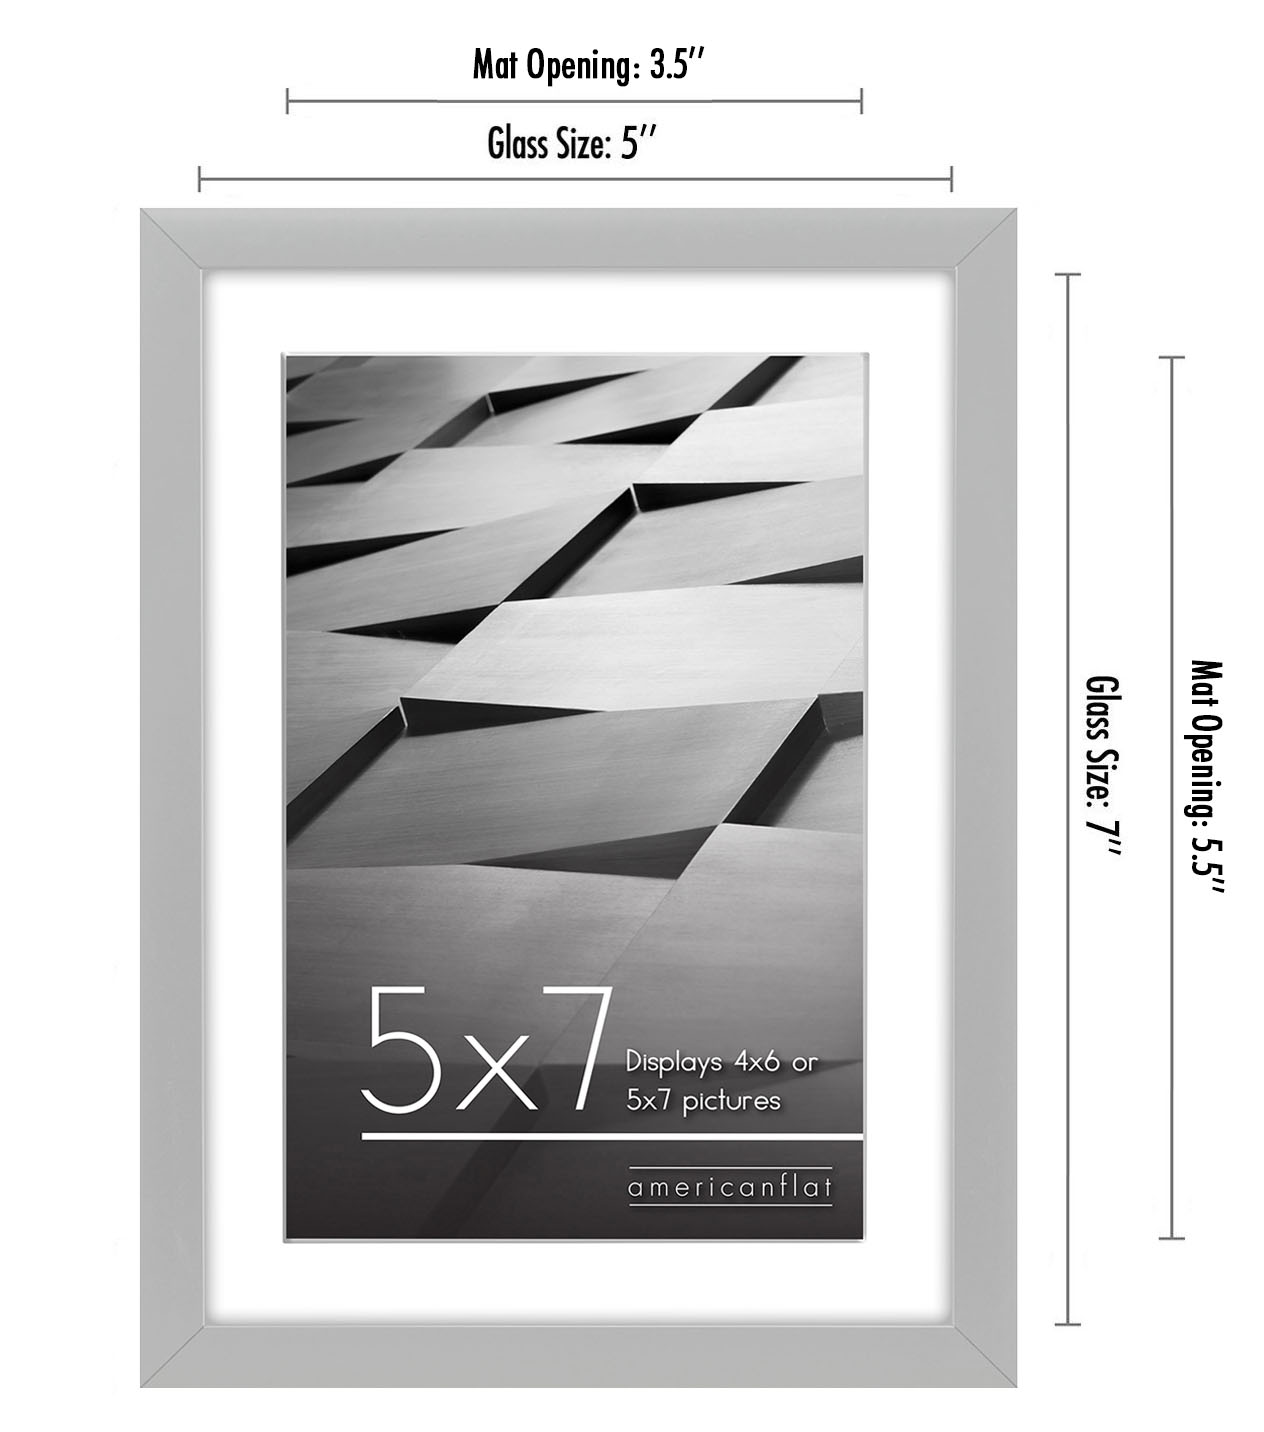 miniature 63 - Americanflat Thin Picture Frame 5x7 8x10 11x14 8.5x11 Wall Tabletop Pick Color